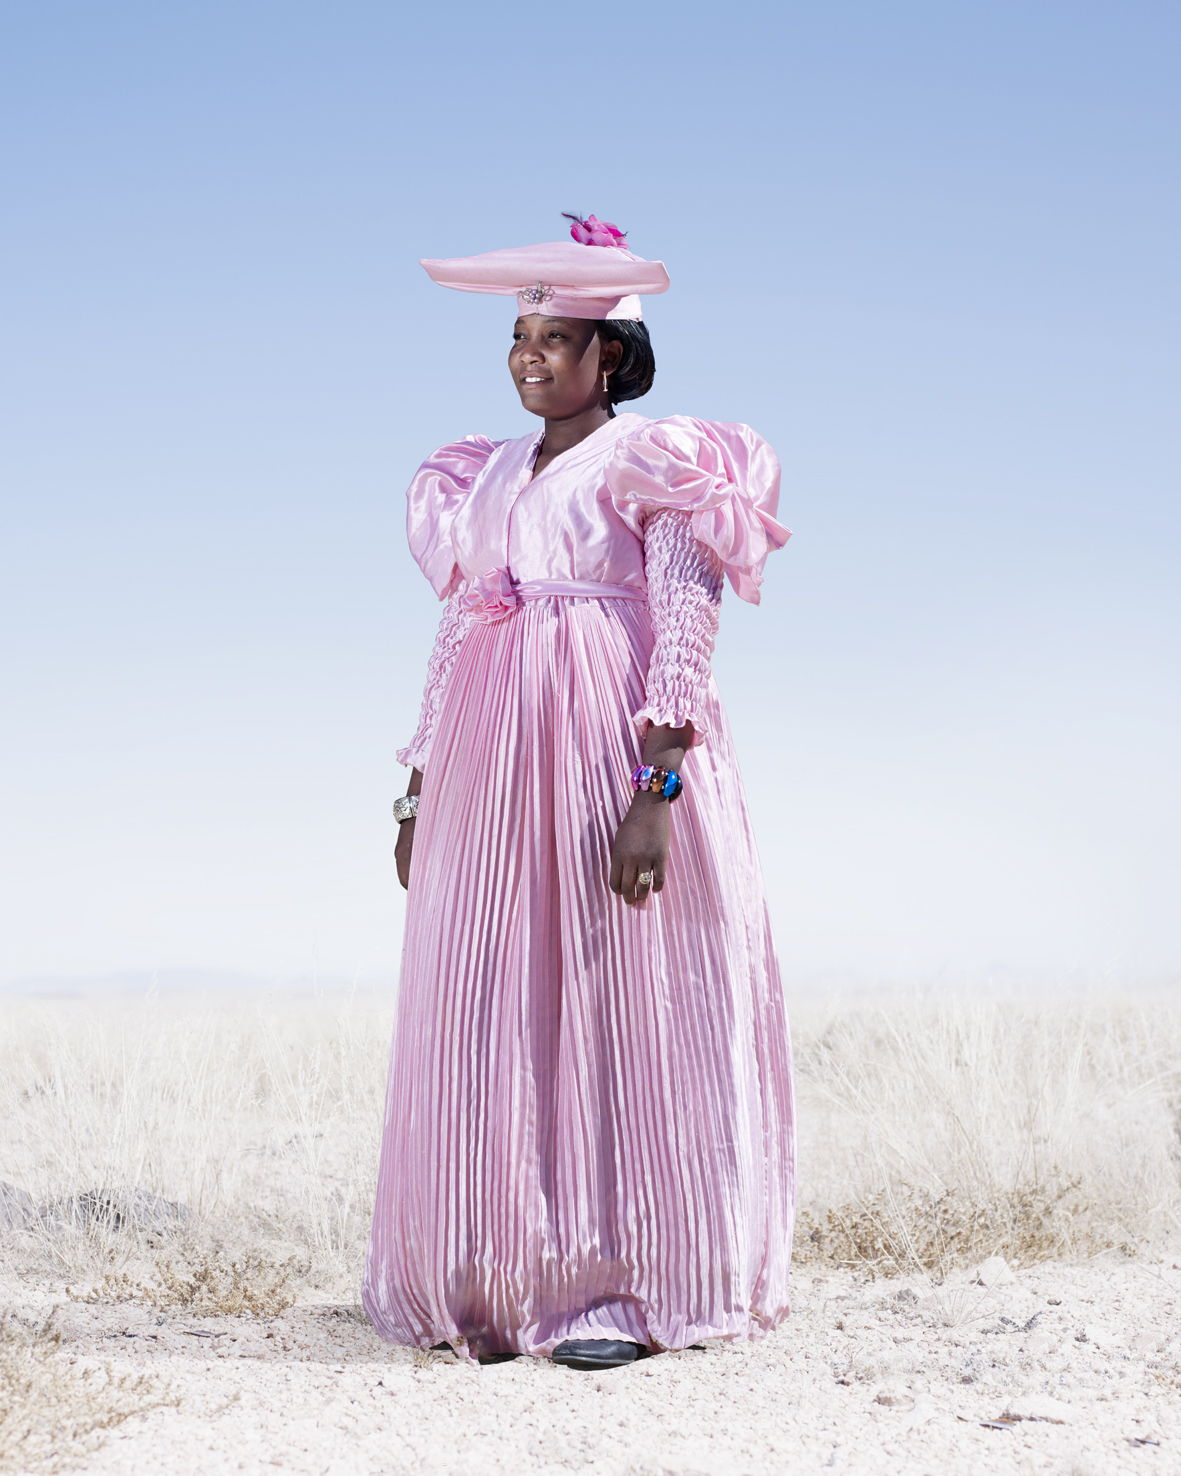 This women is dressed to attend a funeral. Herero funerals can last for several days, with funeral-goers, who often travel long distances in order to pay their respects, camping at the funeral site.